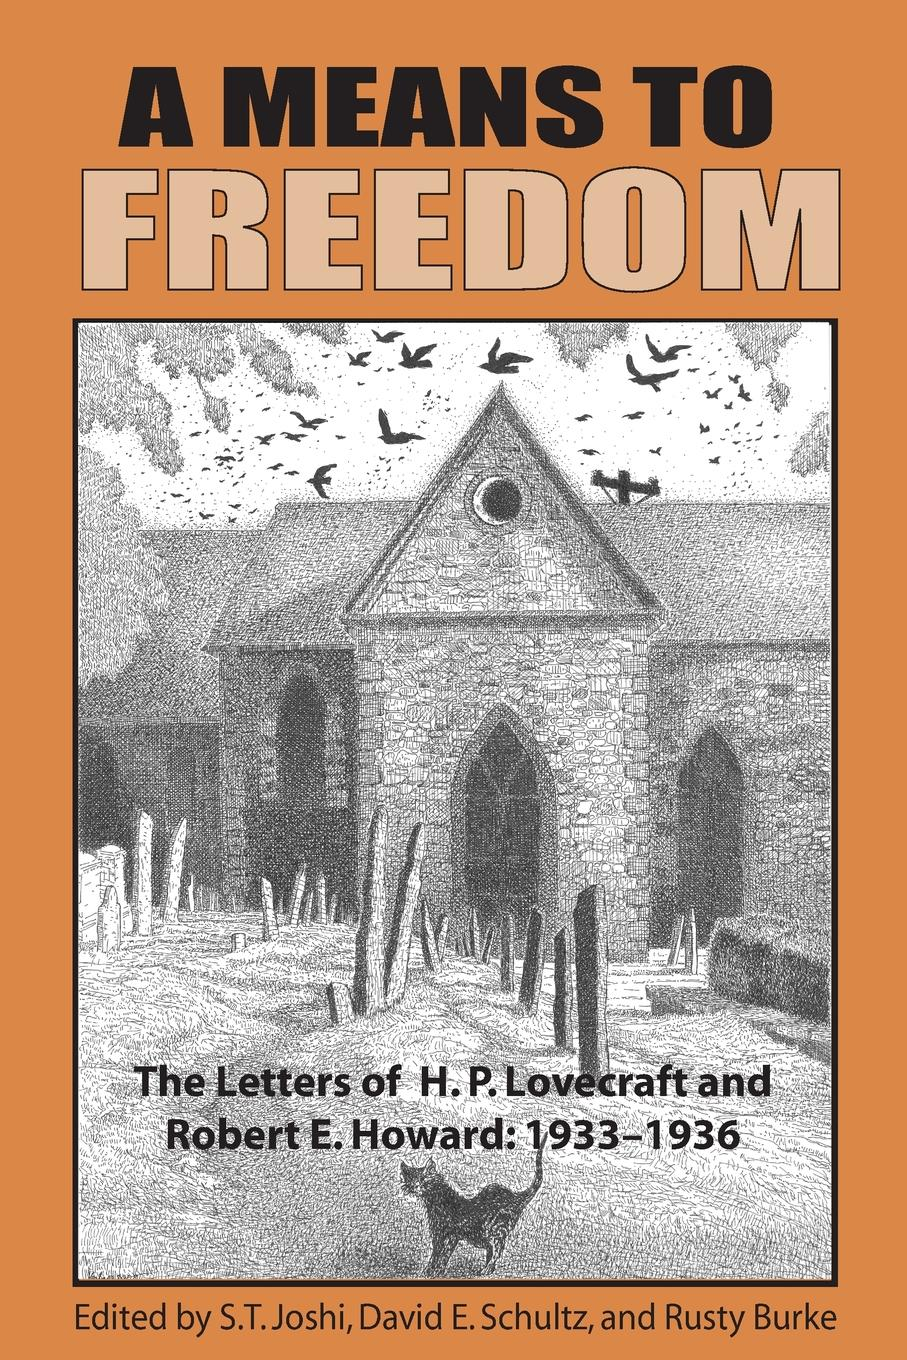 лучшая цена H. P. Lovecraft, Robert E. Howard A Means to Freedom. The Letters of H. P. Lovecraft and Robert E. Howard (Volume 2)